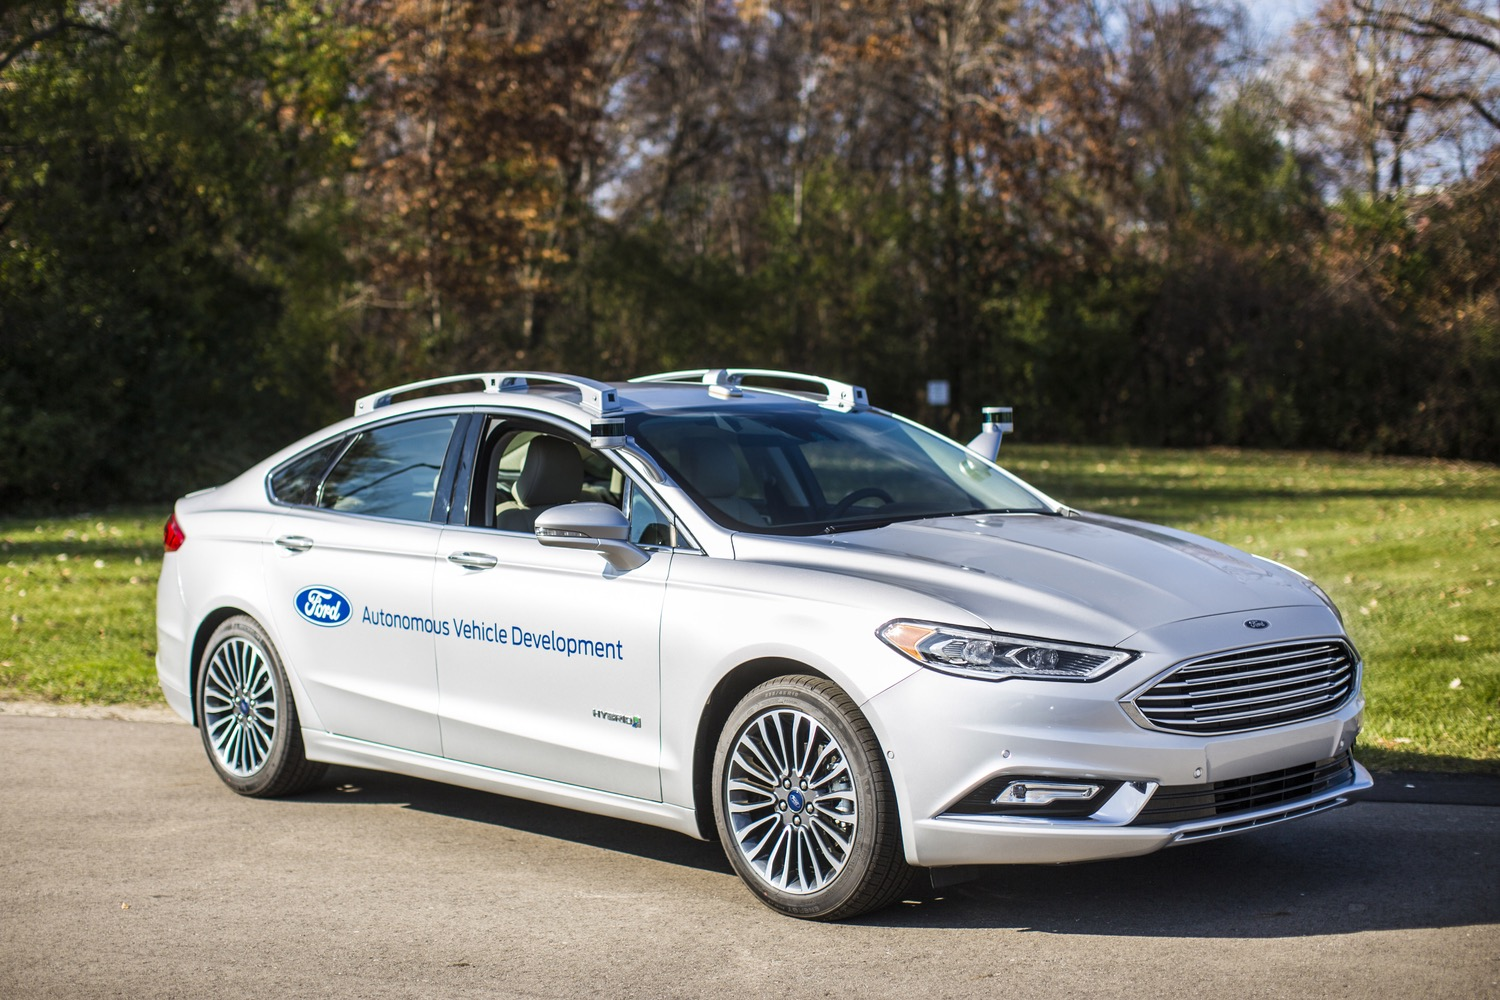 Traditional automakers lead the way on self-driving cars, study ...